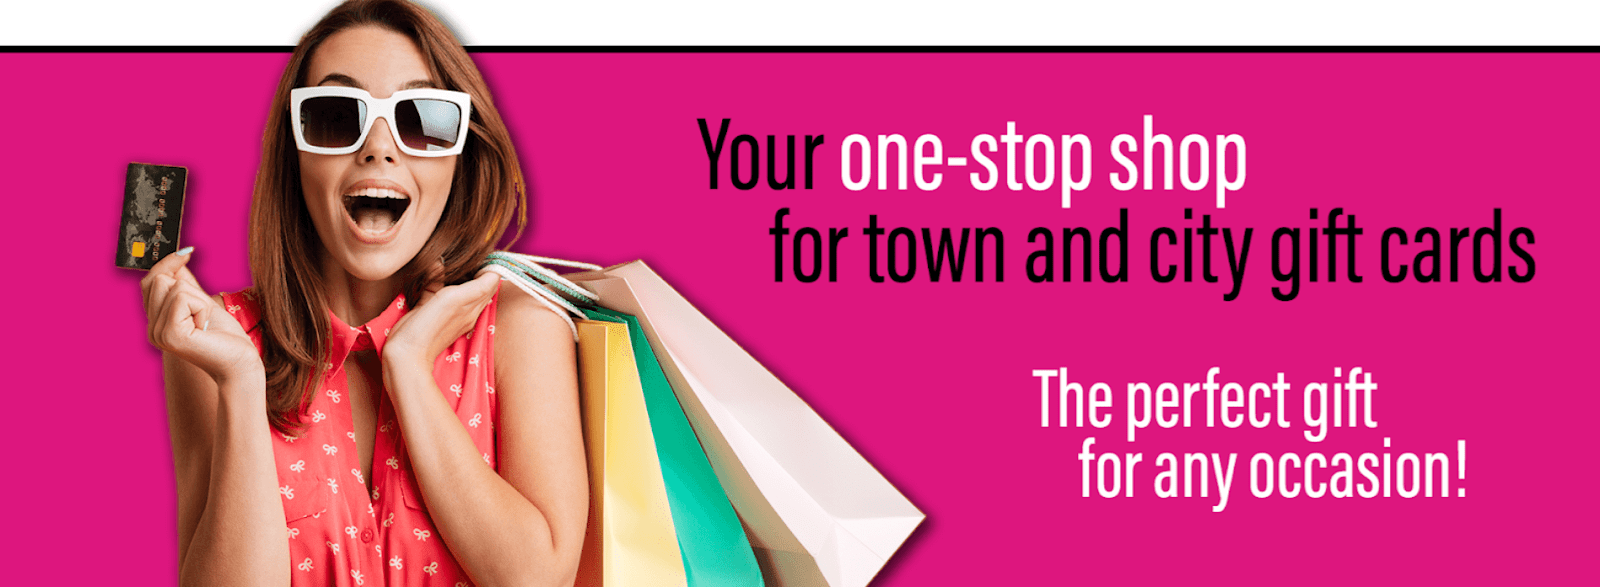 "A happy shopper in front of a pink background. Text reads ""Your one-stop shop for town and city gift cards. The perfect gift for any occasion!"""